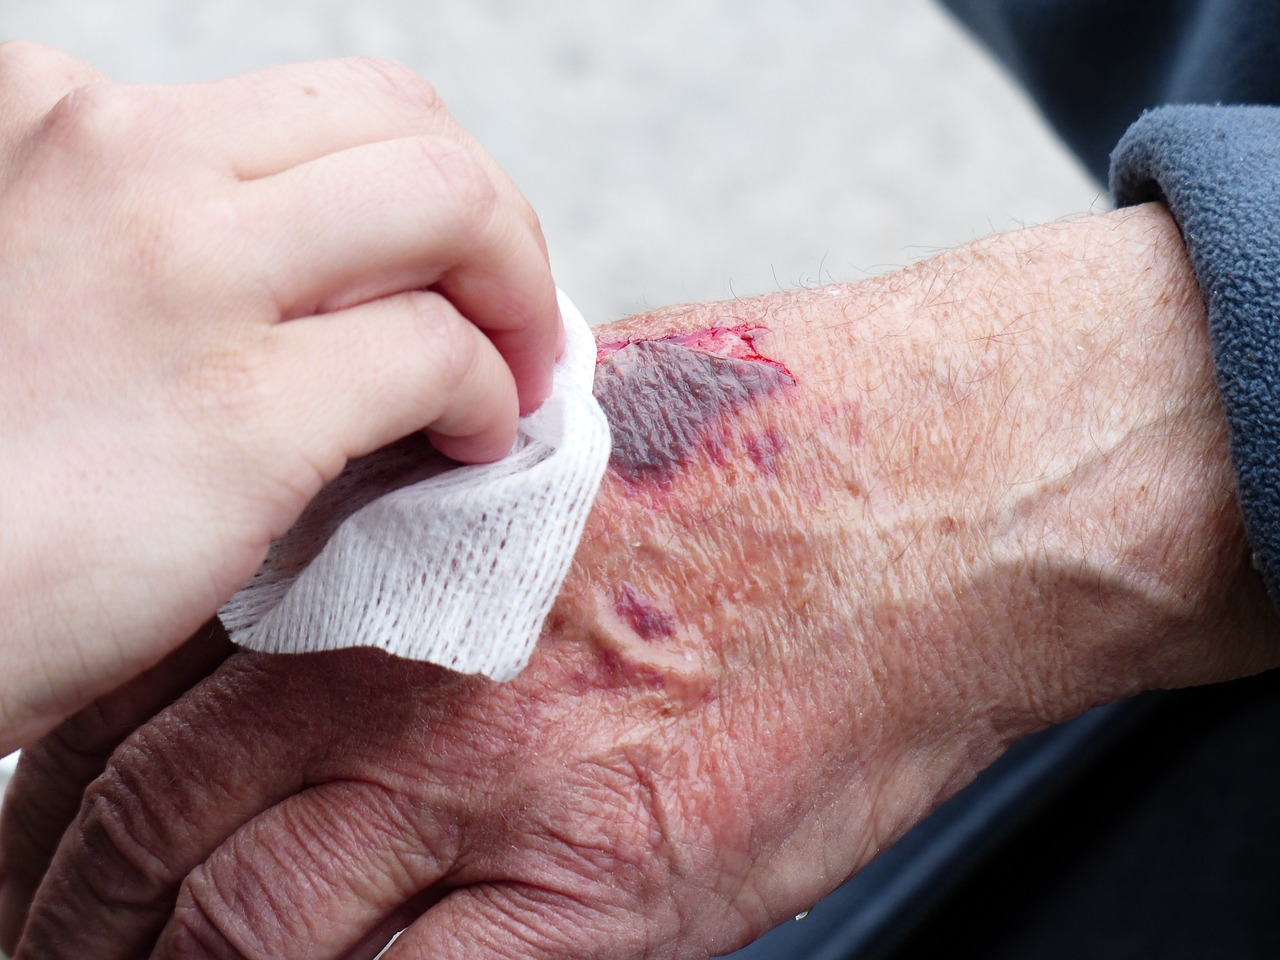 Wound care of lesion on elderly hand